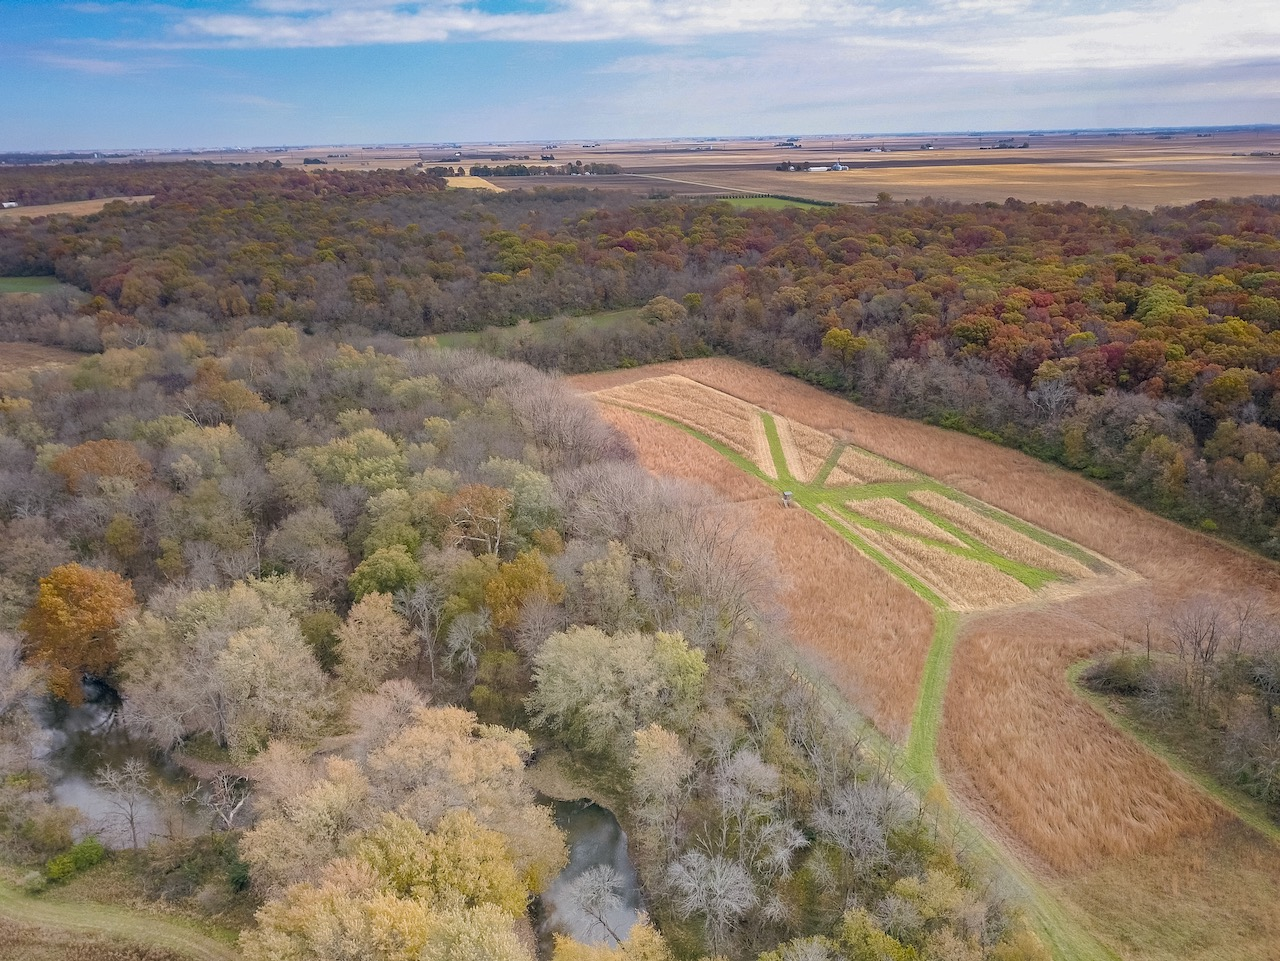 502 Acre Hunting Property in Illinois